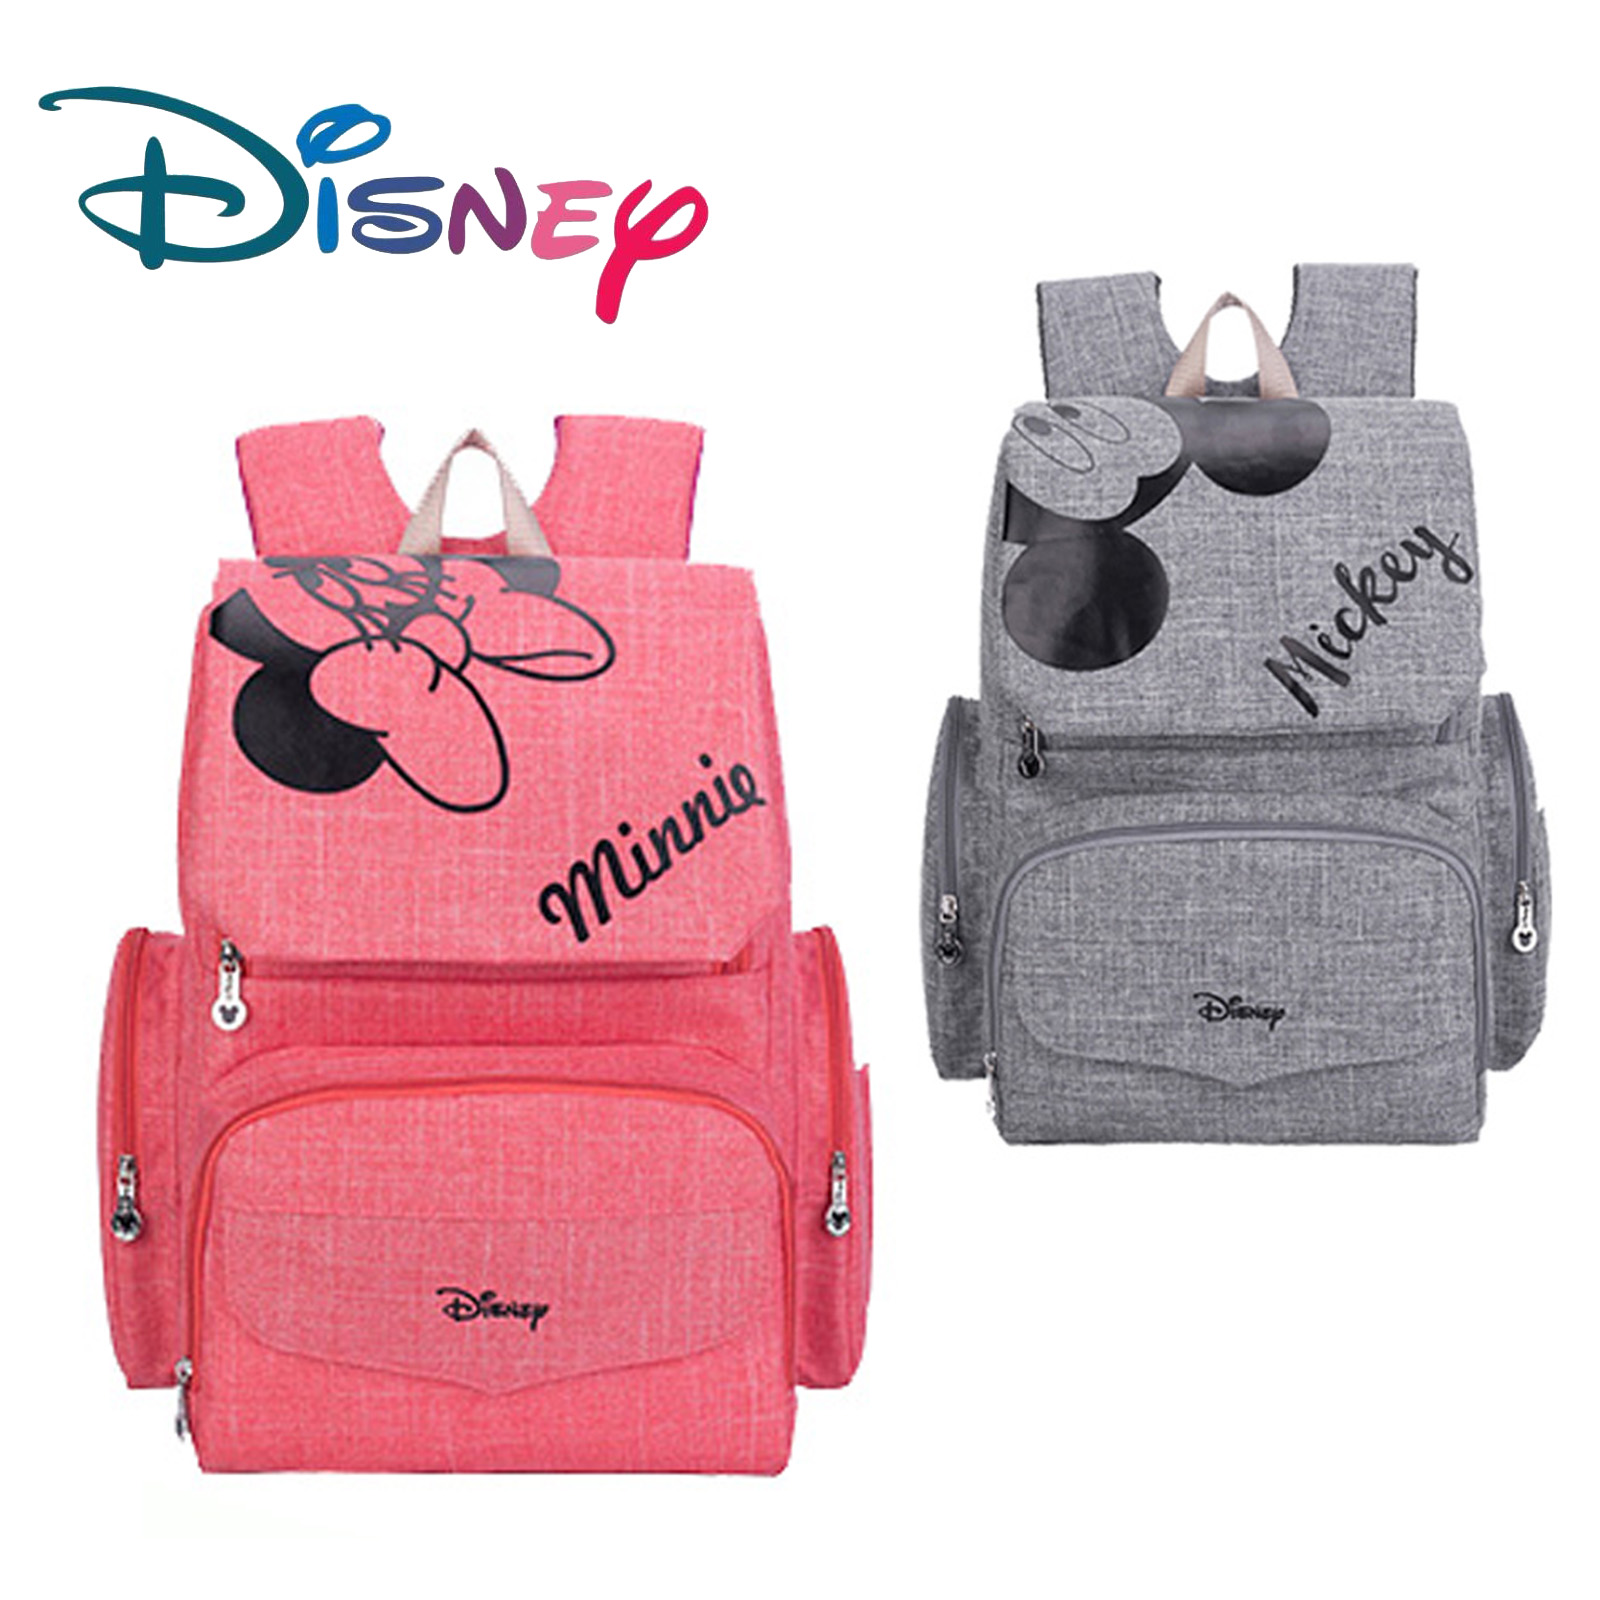 Diseny Fashion Mummy Maternity Nappy Bag Travel Backpack Diaper Bag  Waterproof Mochila Maternidade Para Beb Backpack For Moms